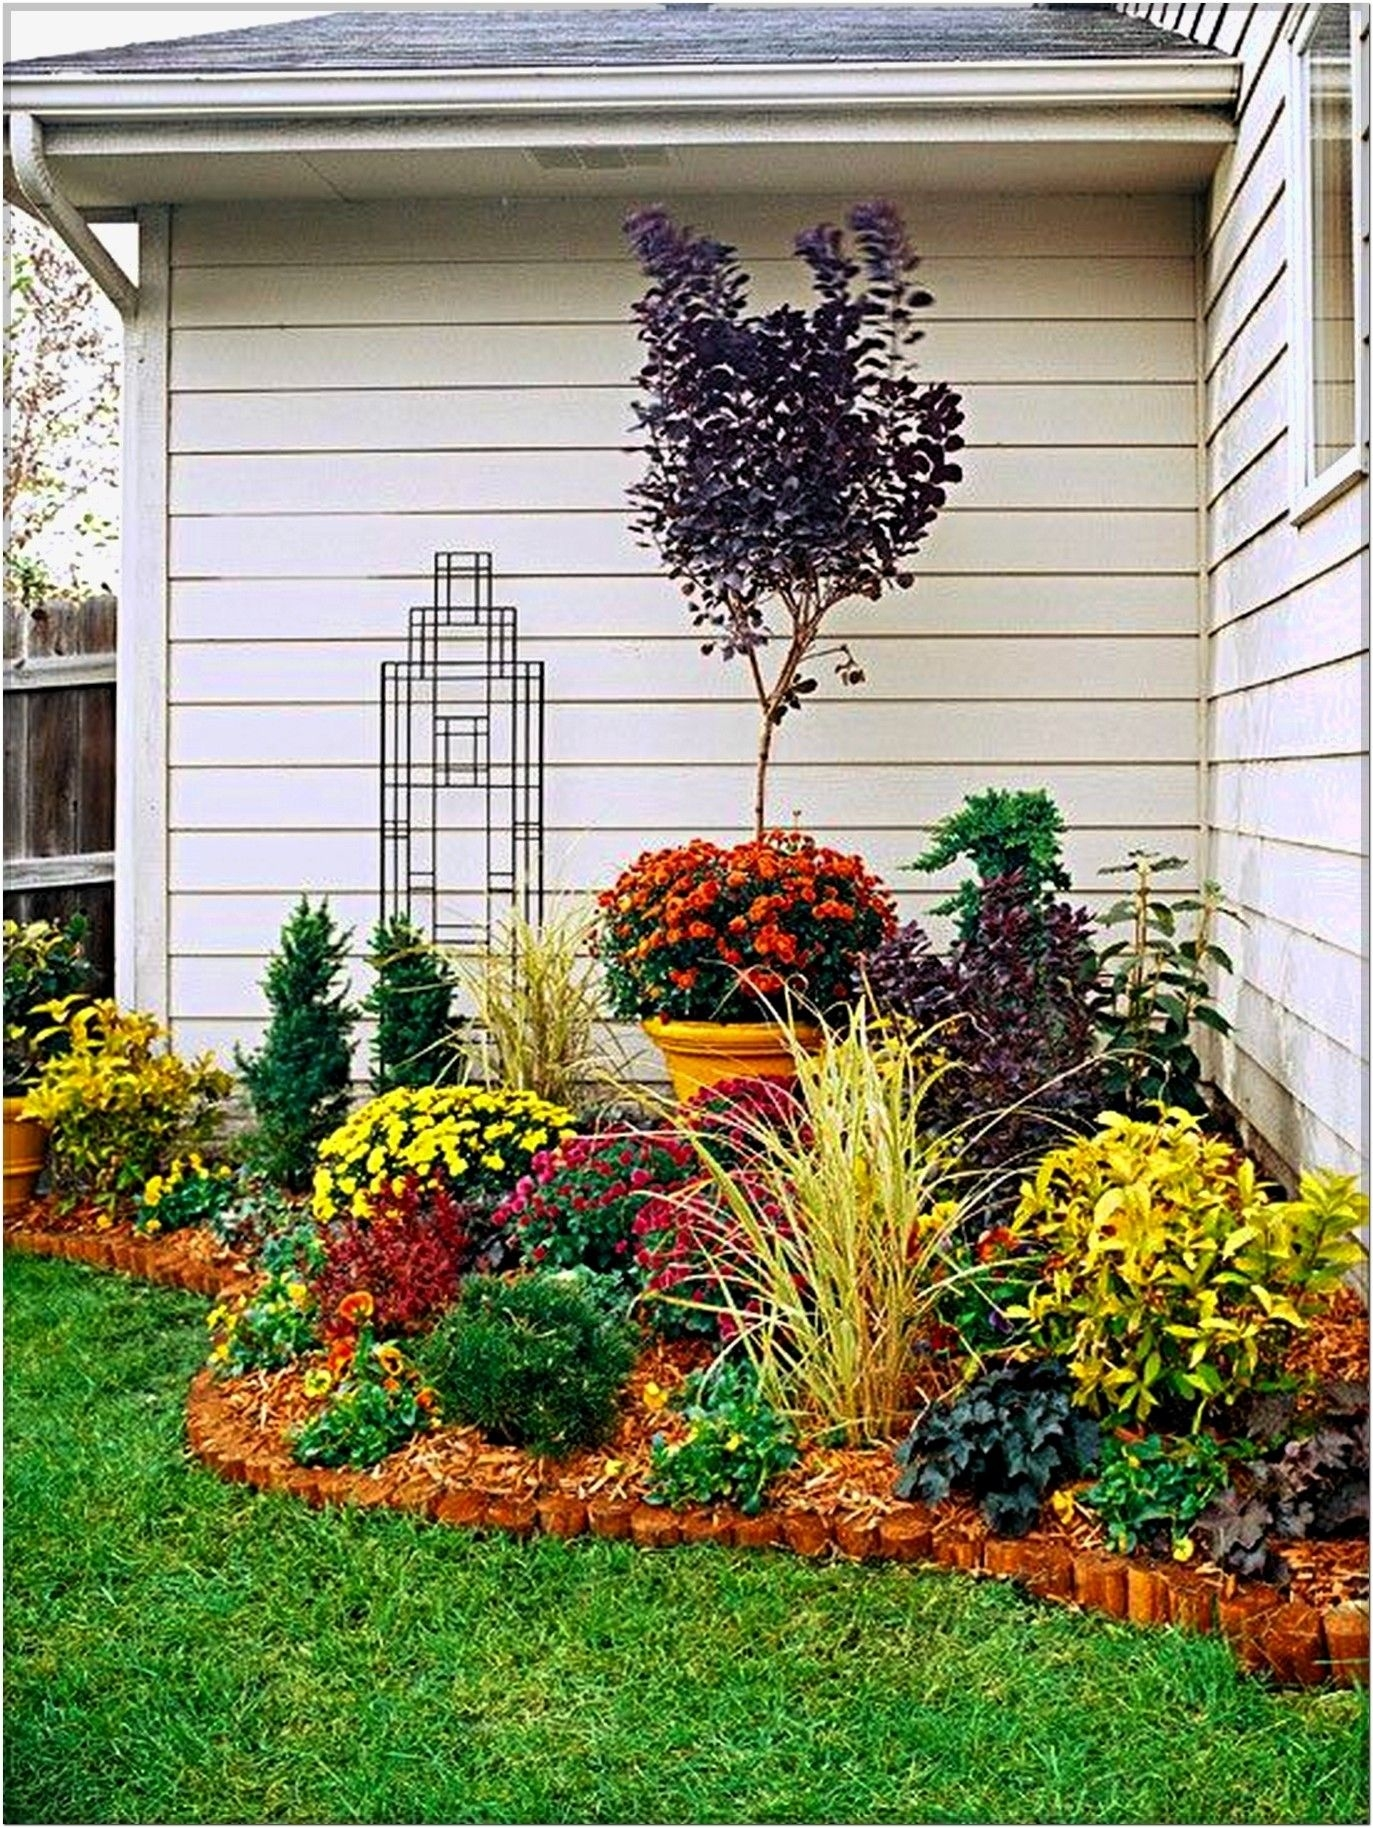 welcome to the 2015 southern home fall tour | garden | flower garden intended for Decorating A Small Garden